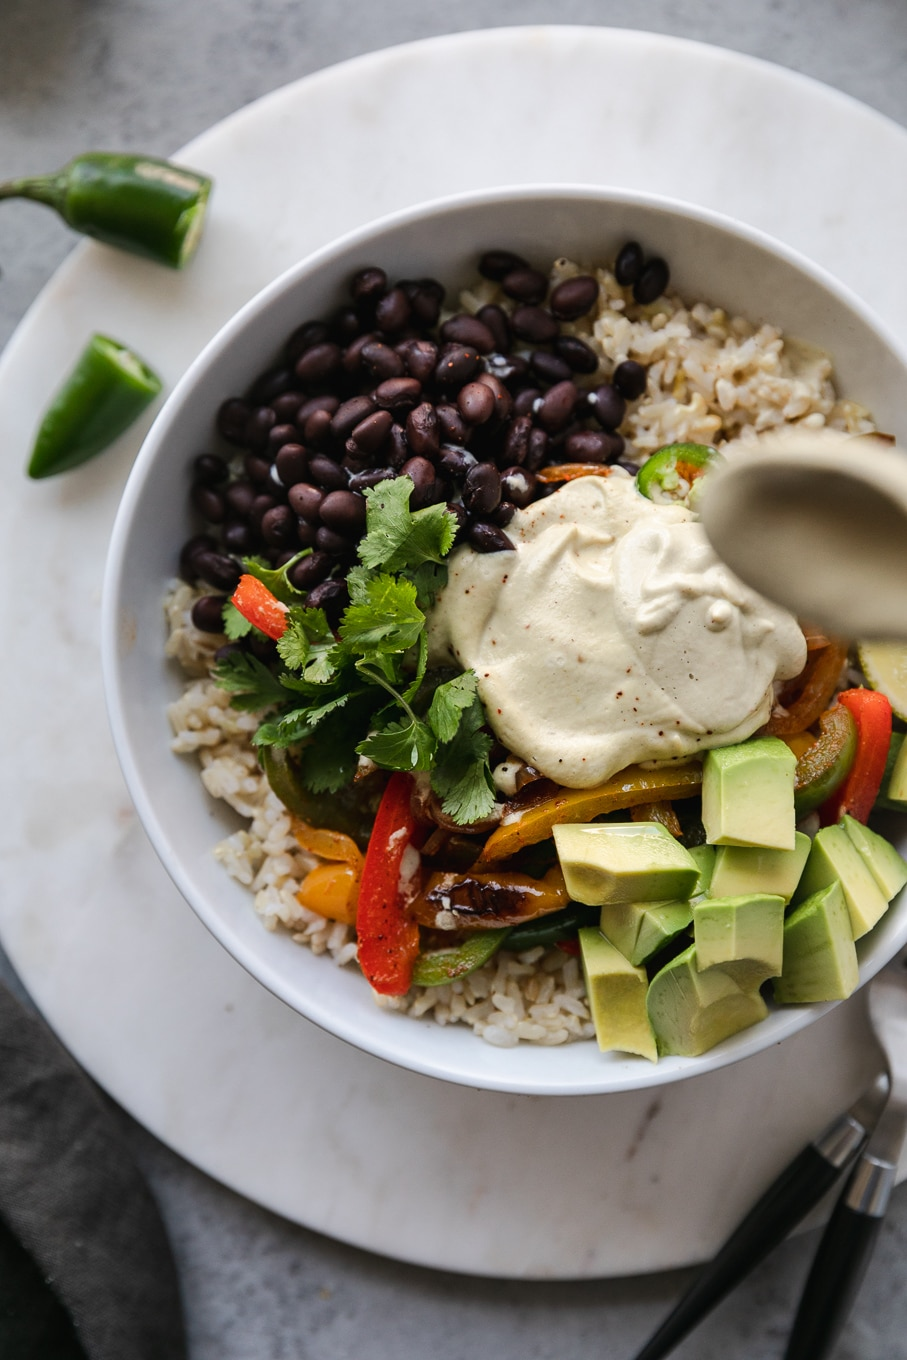 Overhead close up shot of a burrito bowl filled with black beans, fajita veggies, and avocado, being drizzled with cashew queso